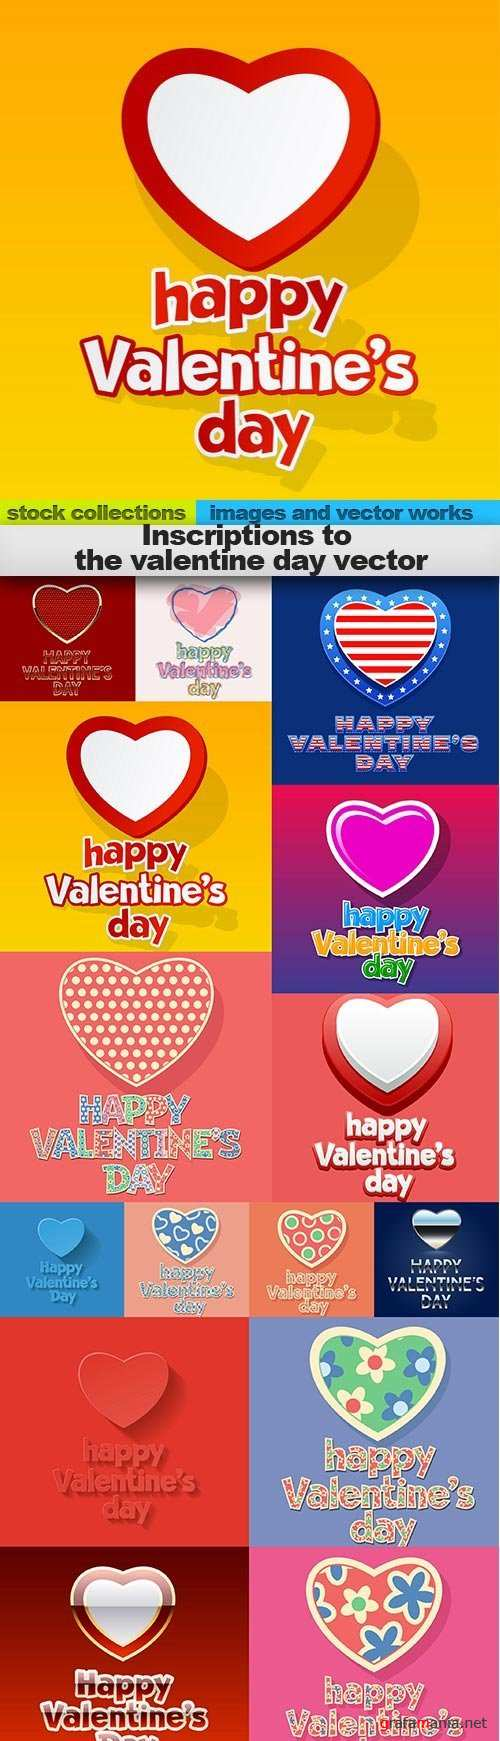 Inscriptions to the valentine day vector, 15 x EPS